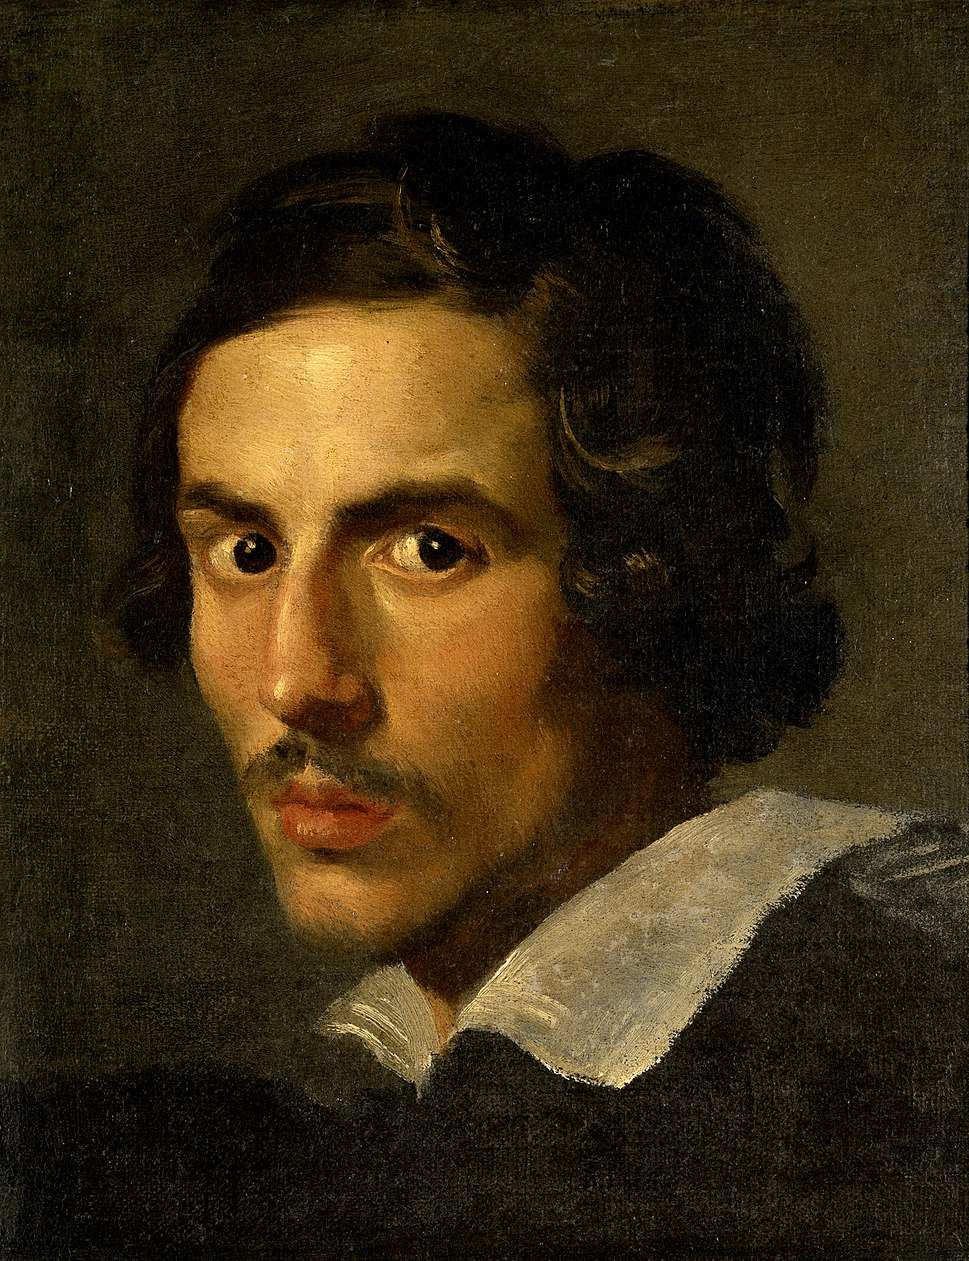 Gian Lorenzo Bernini, self-portrait, c1623